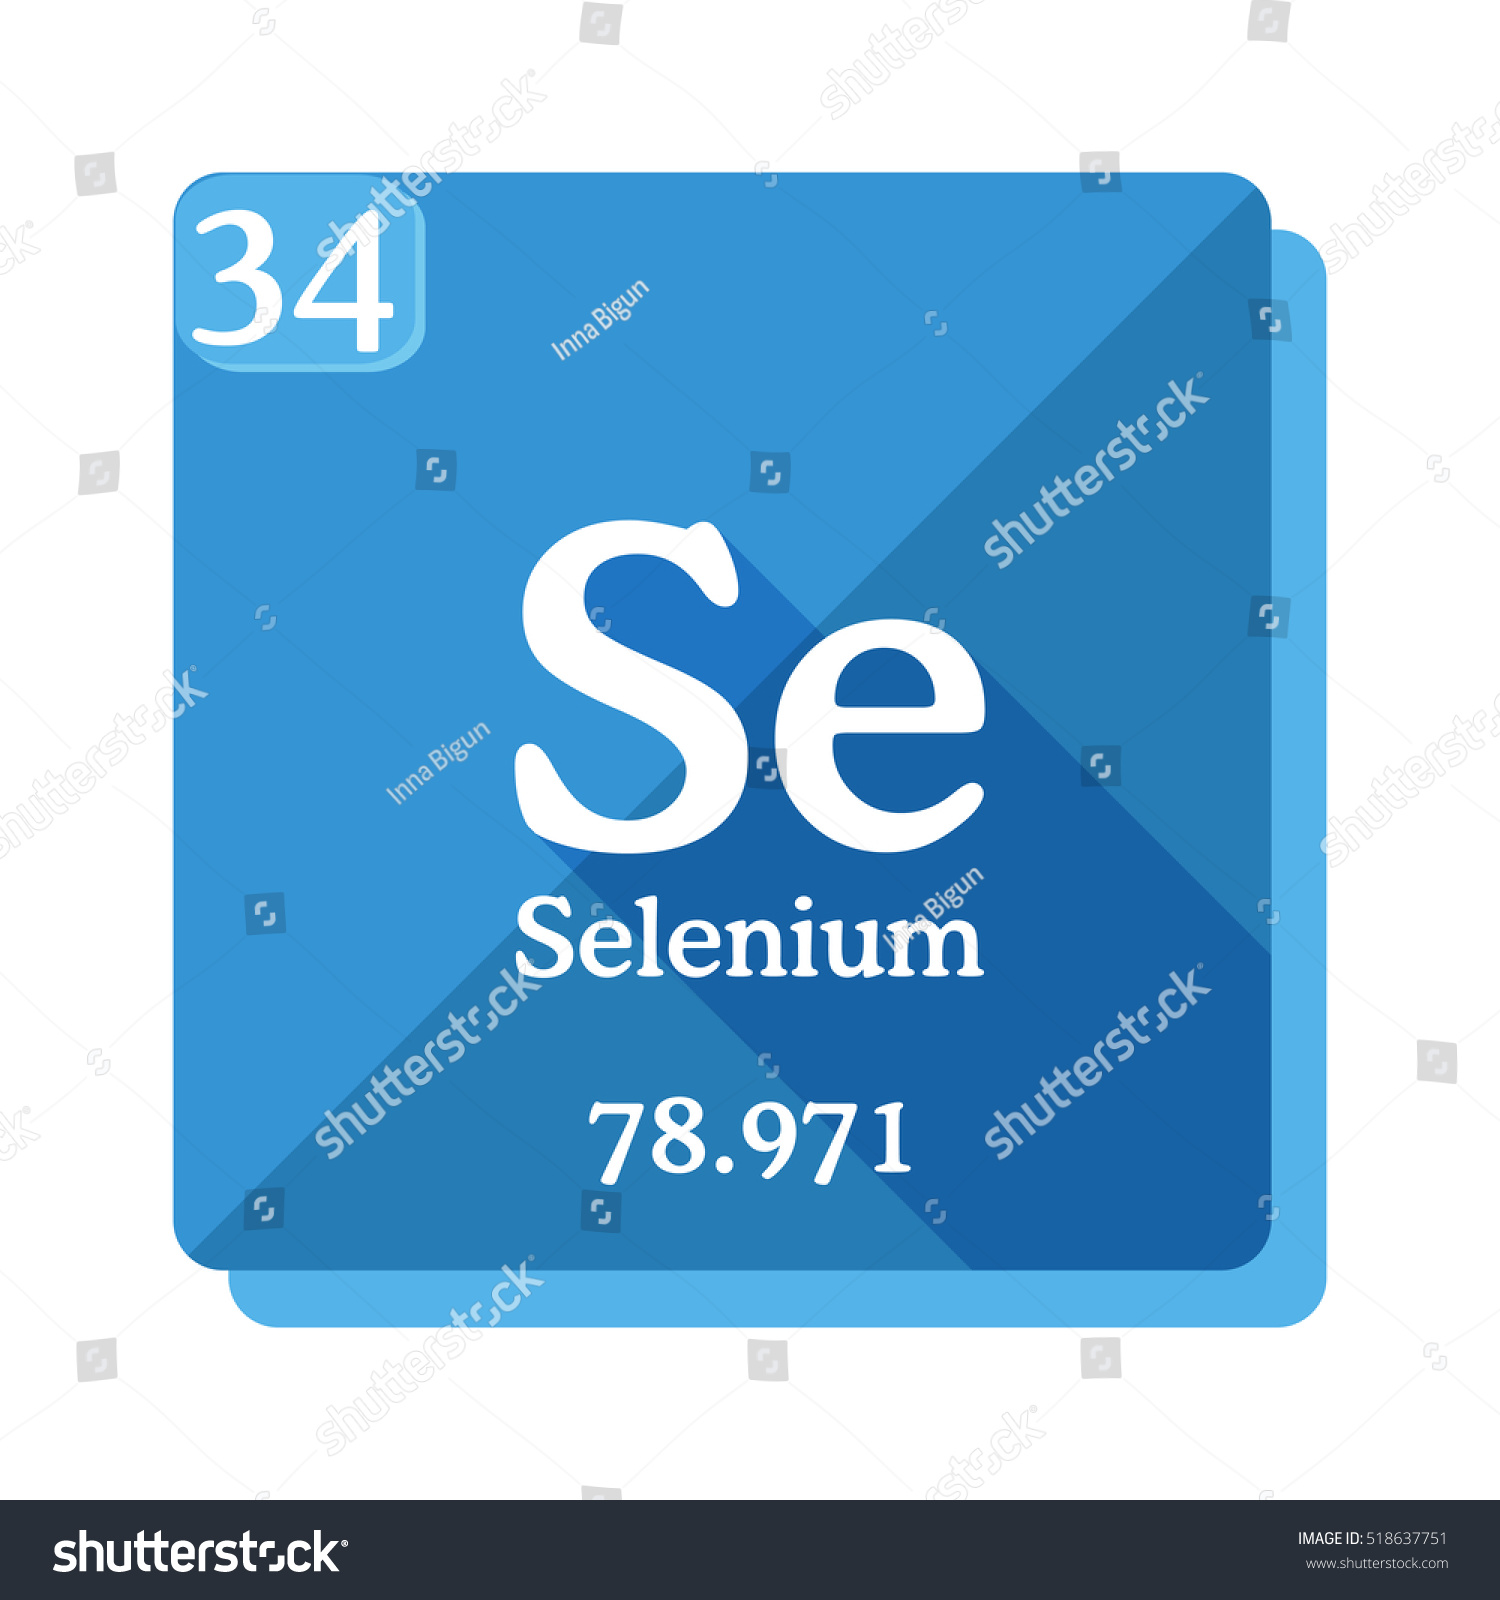 Selenium se element periodic table flat stock vector 518637751 selenium se element of the periodic table flat icon with long shadow gamestrikefo Images